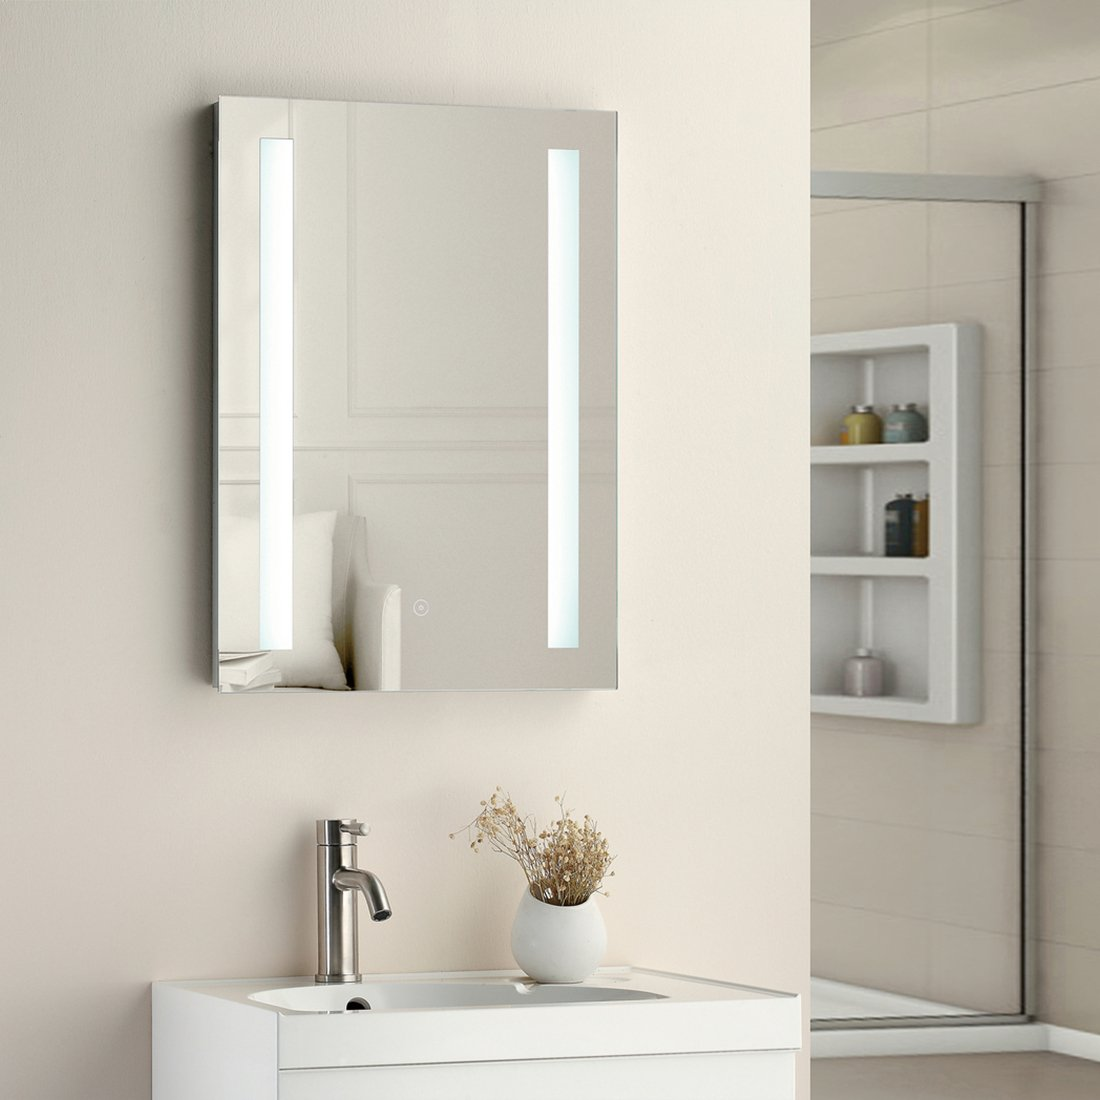 "SUNNY SHOWER 19"" W x 27"" H Backlit Led Bathroom Vanity Sink Silvered 4mm Mirror with Touch Button by SL"